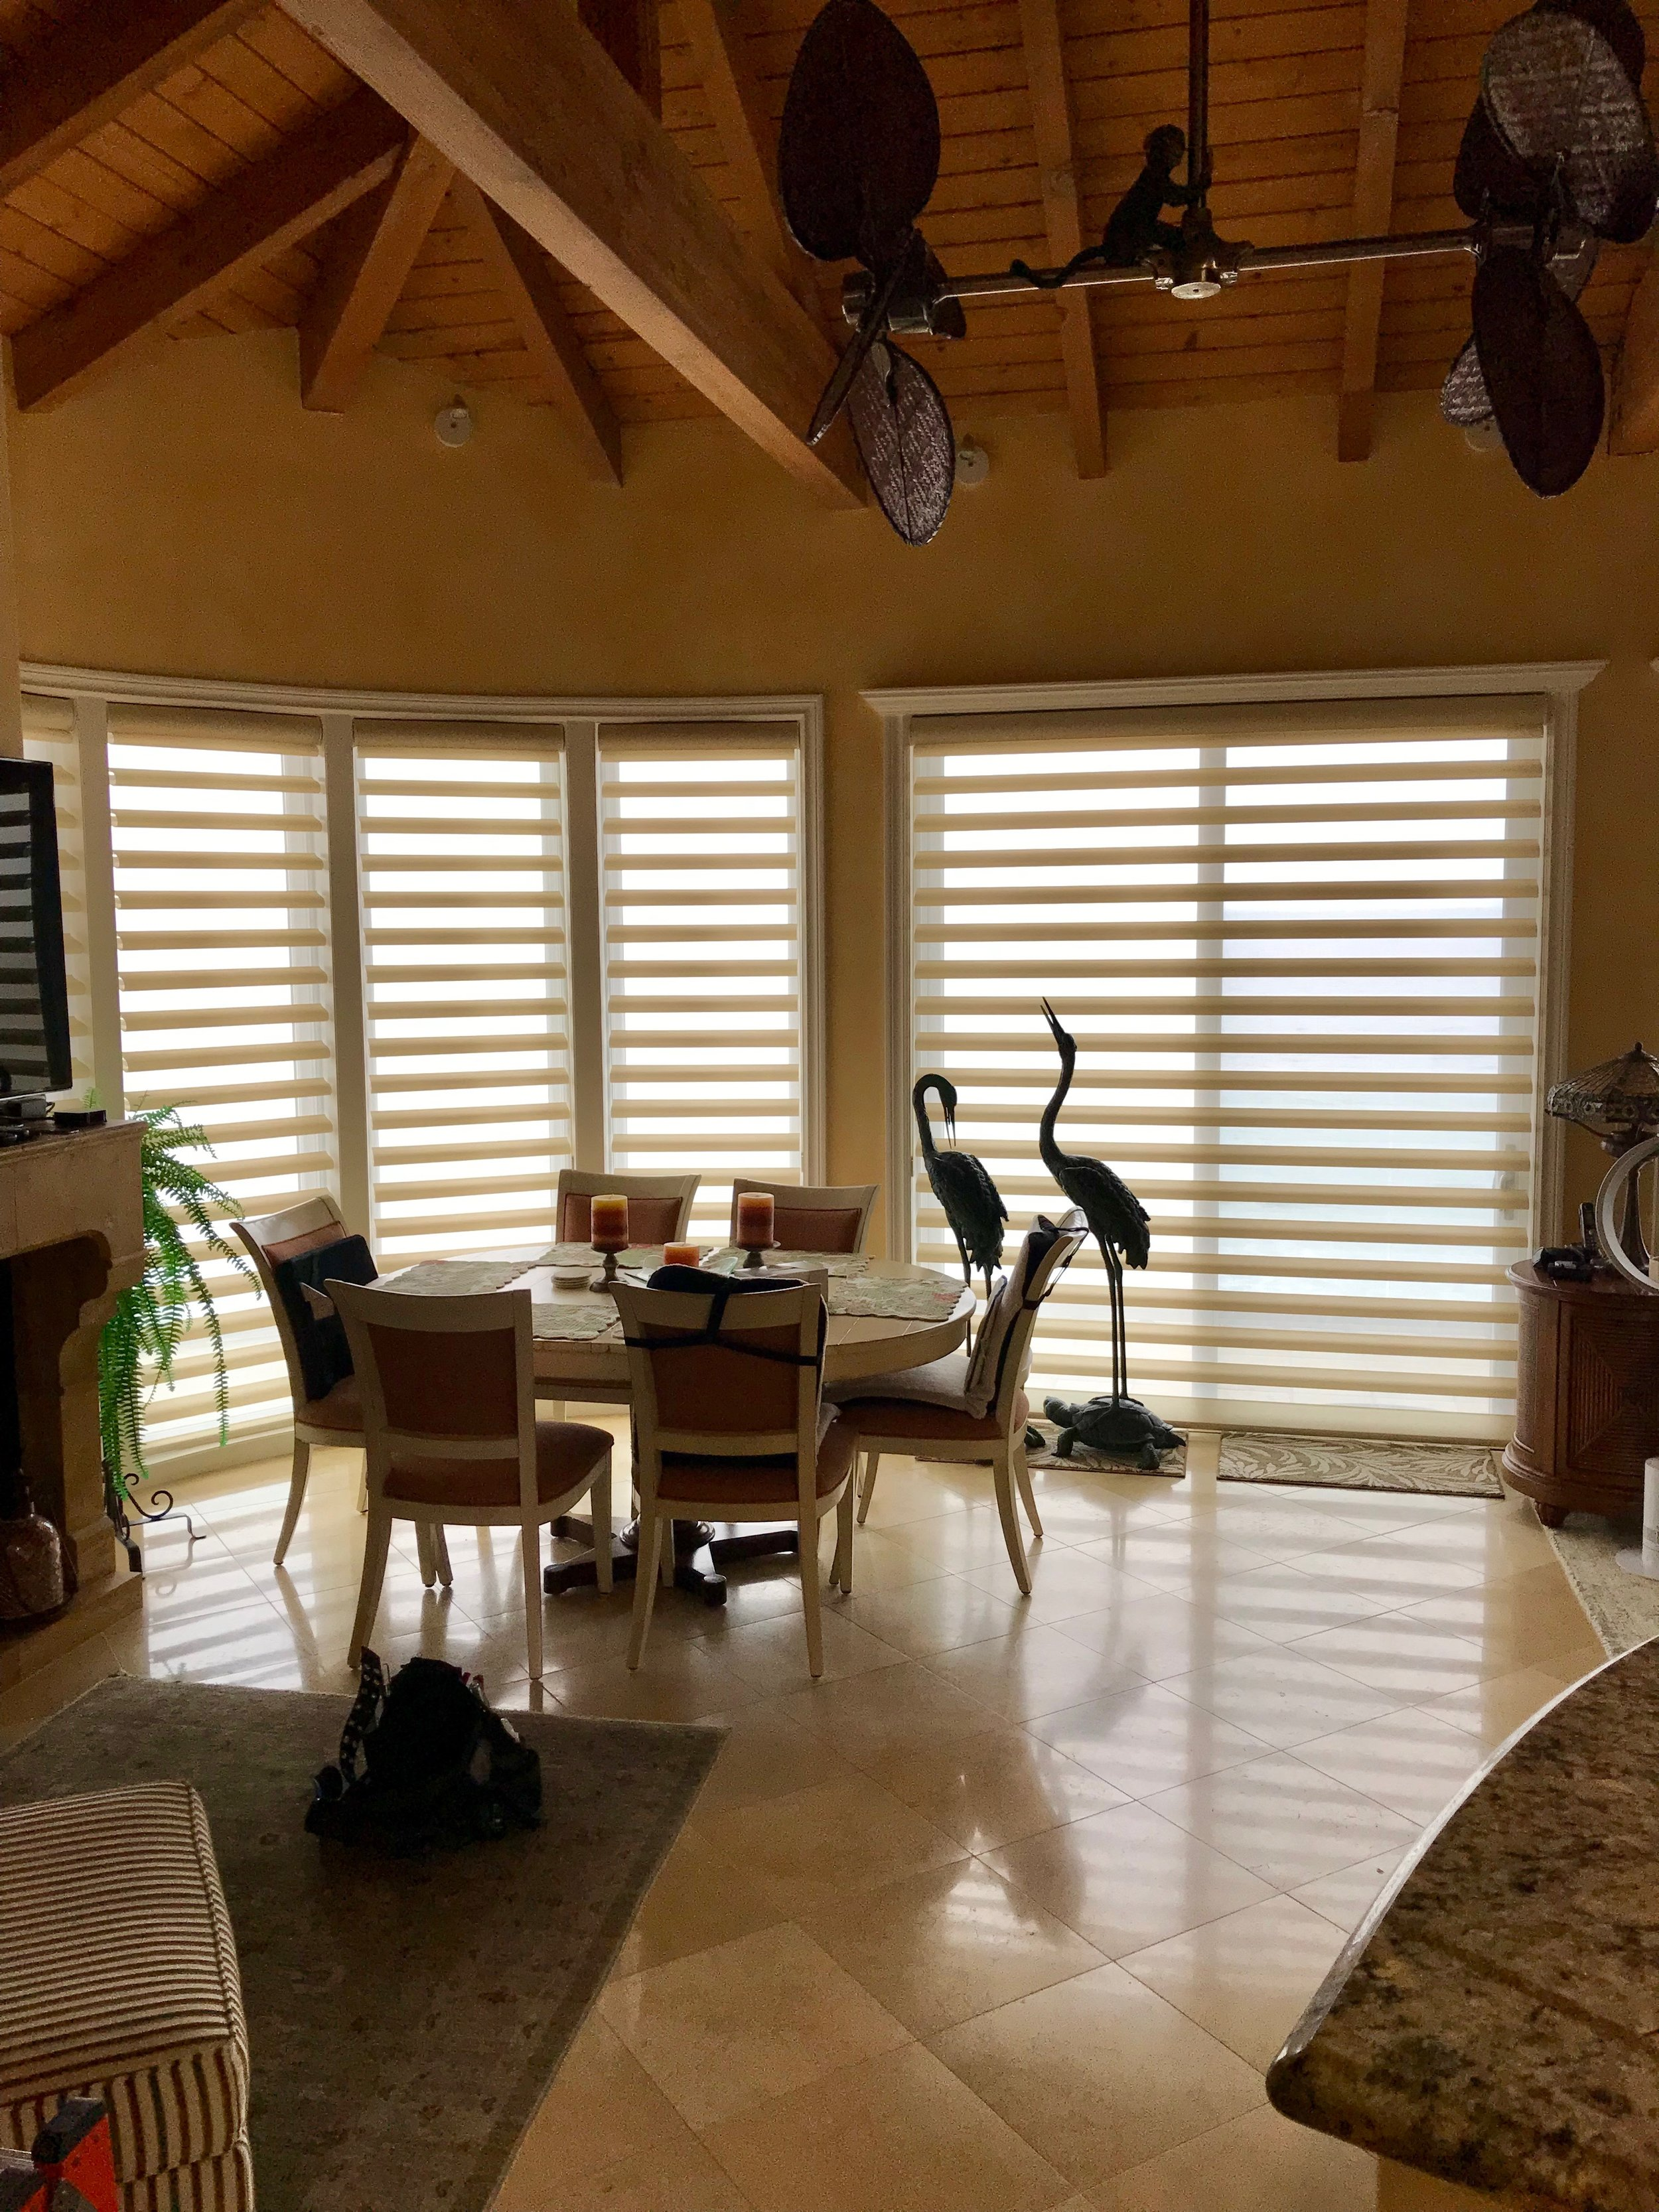 Gallery of Custom Blinds, Shutters & Power Shades in Carlsbad, California (CA) like Screen for Offices